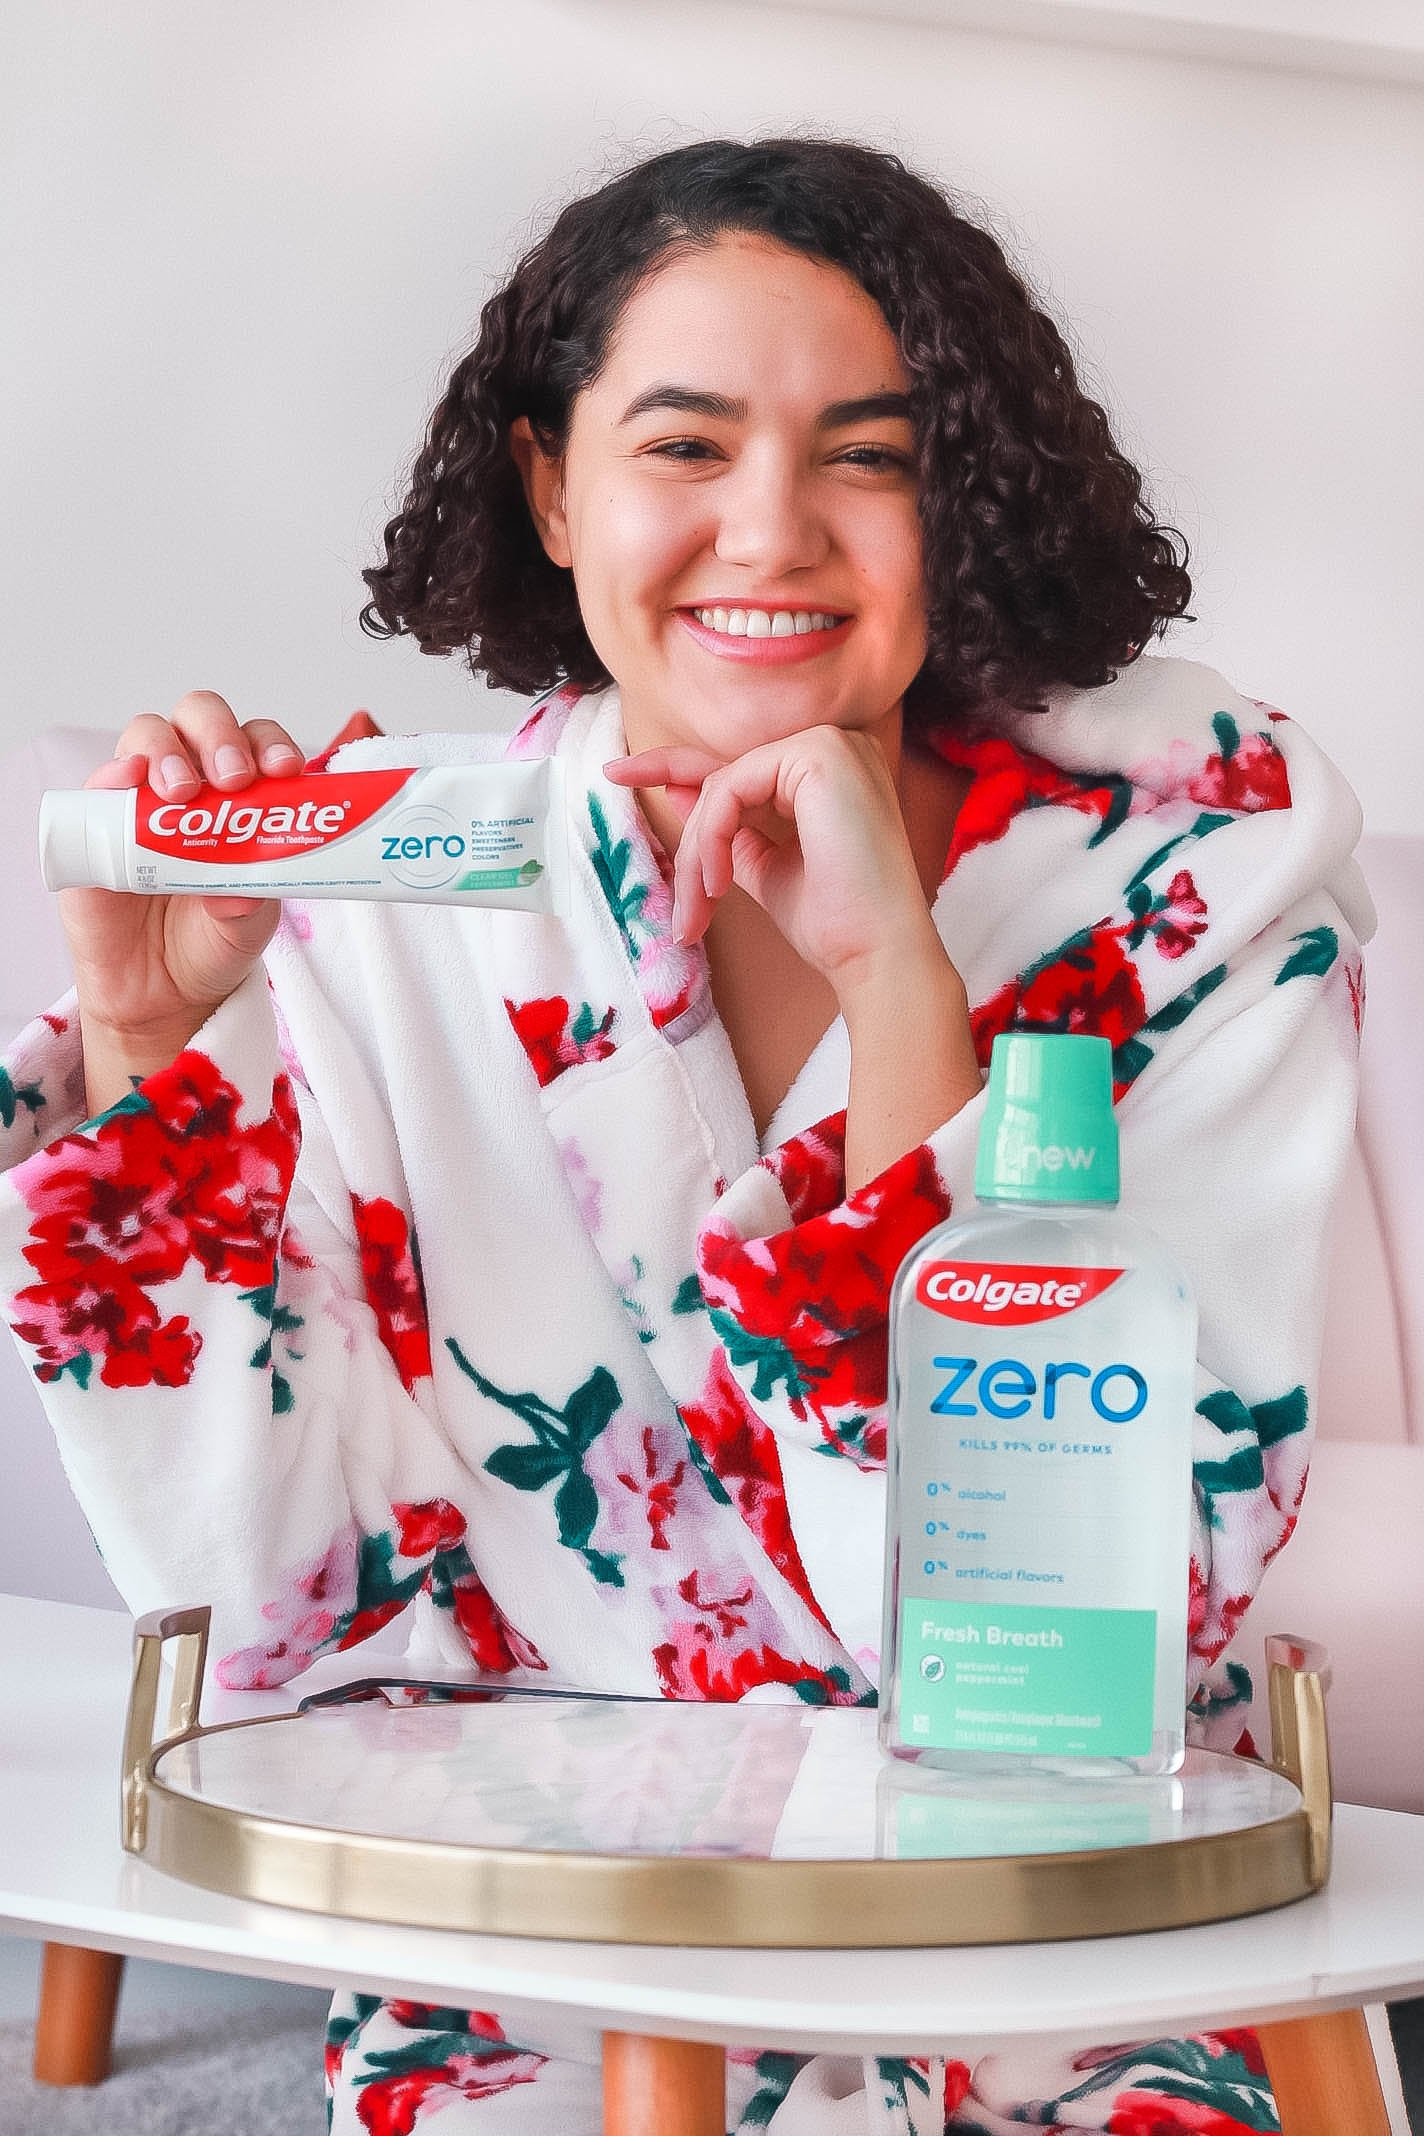 Girl with curly hair wearing a robe and holding colgate zero toothpaste and moutwash